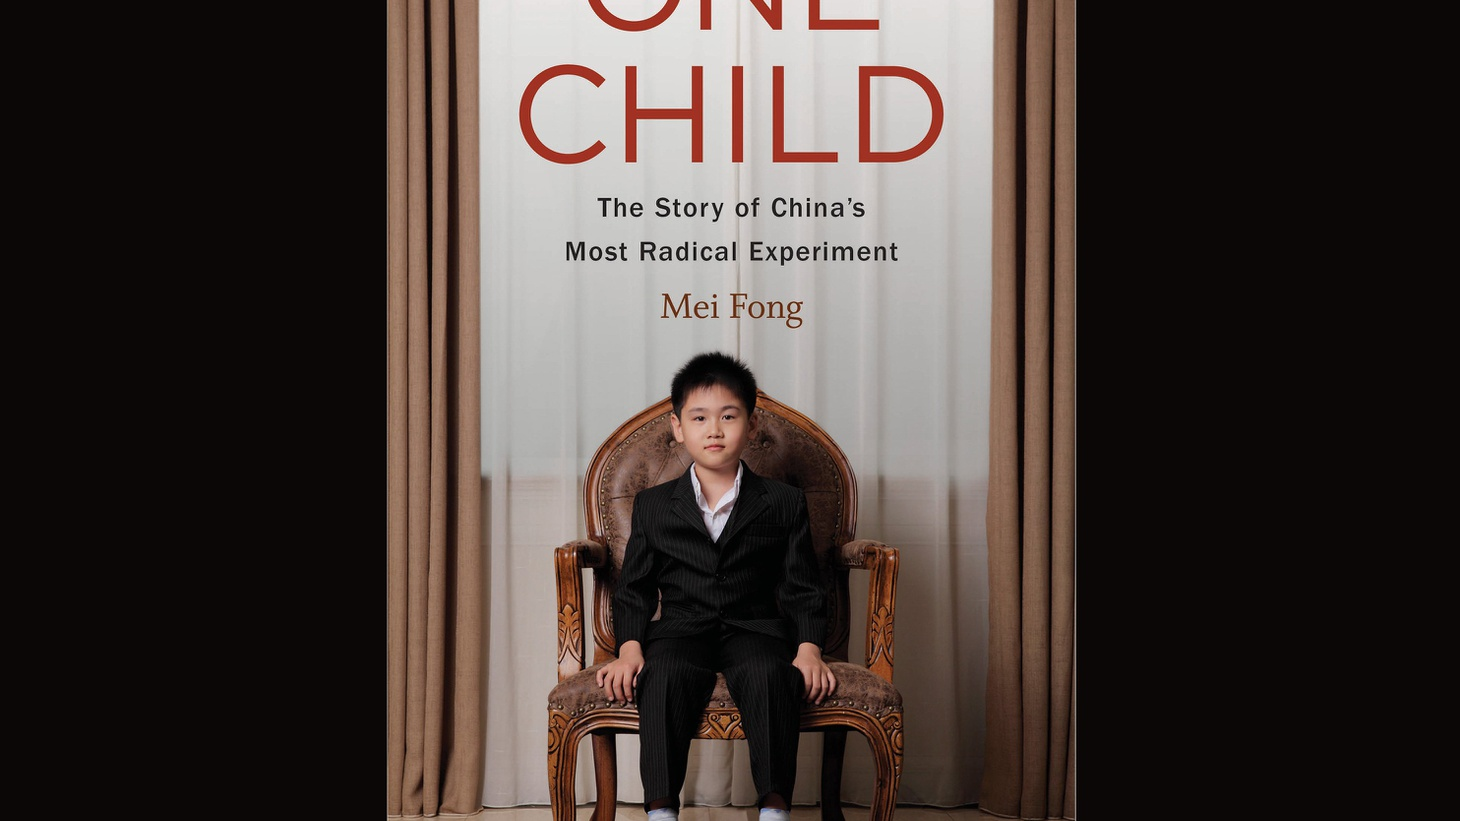 """China is trying to end one of the world's most radical social experiments: the """"One Child"""" policy that limited families to a single offspring. Long-time journalist Mei Fong tells us how it started and what its legacy will be in China and in the rest of the world. She's the author of  One Child: China's Most Radical Experiment ."""